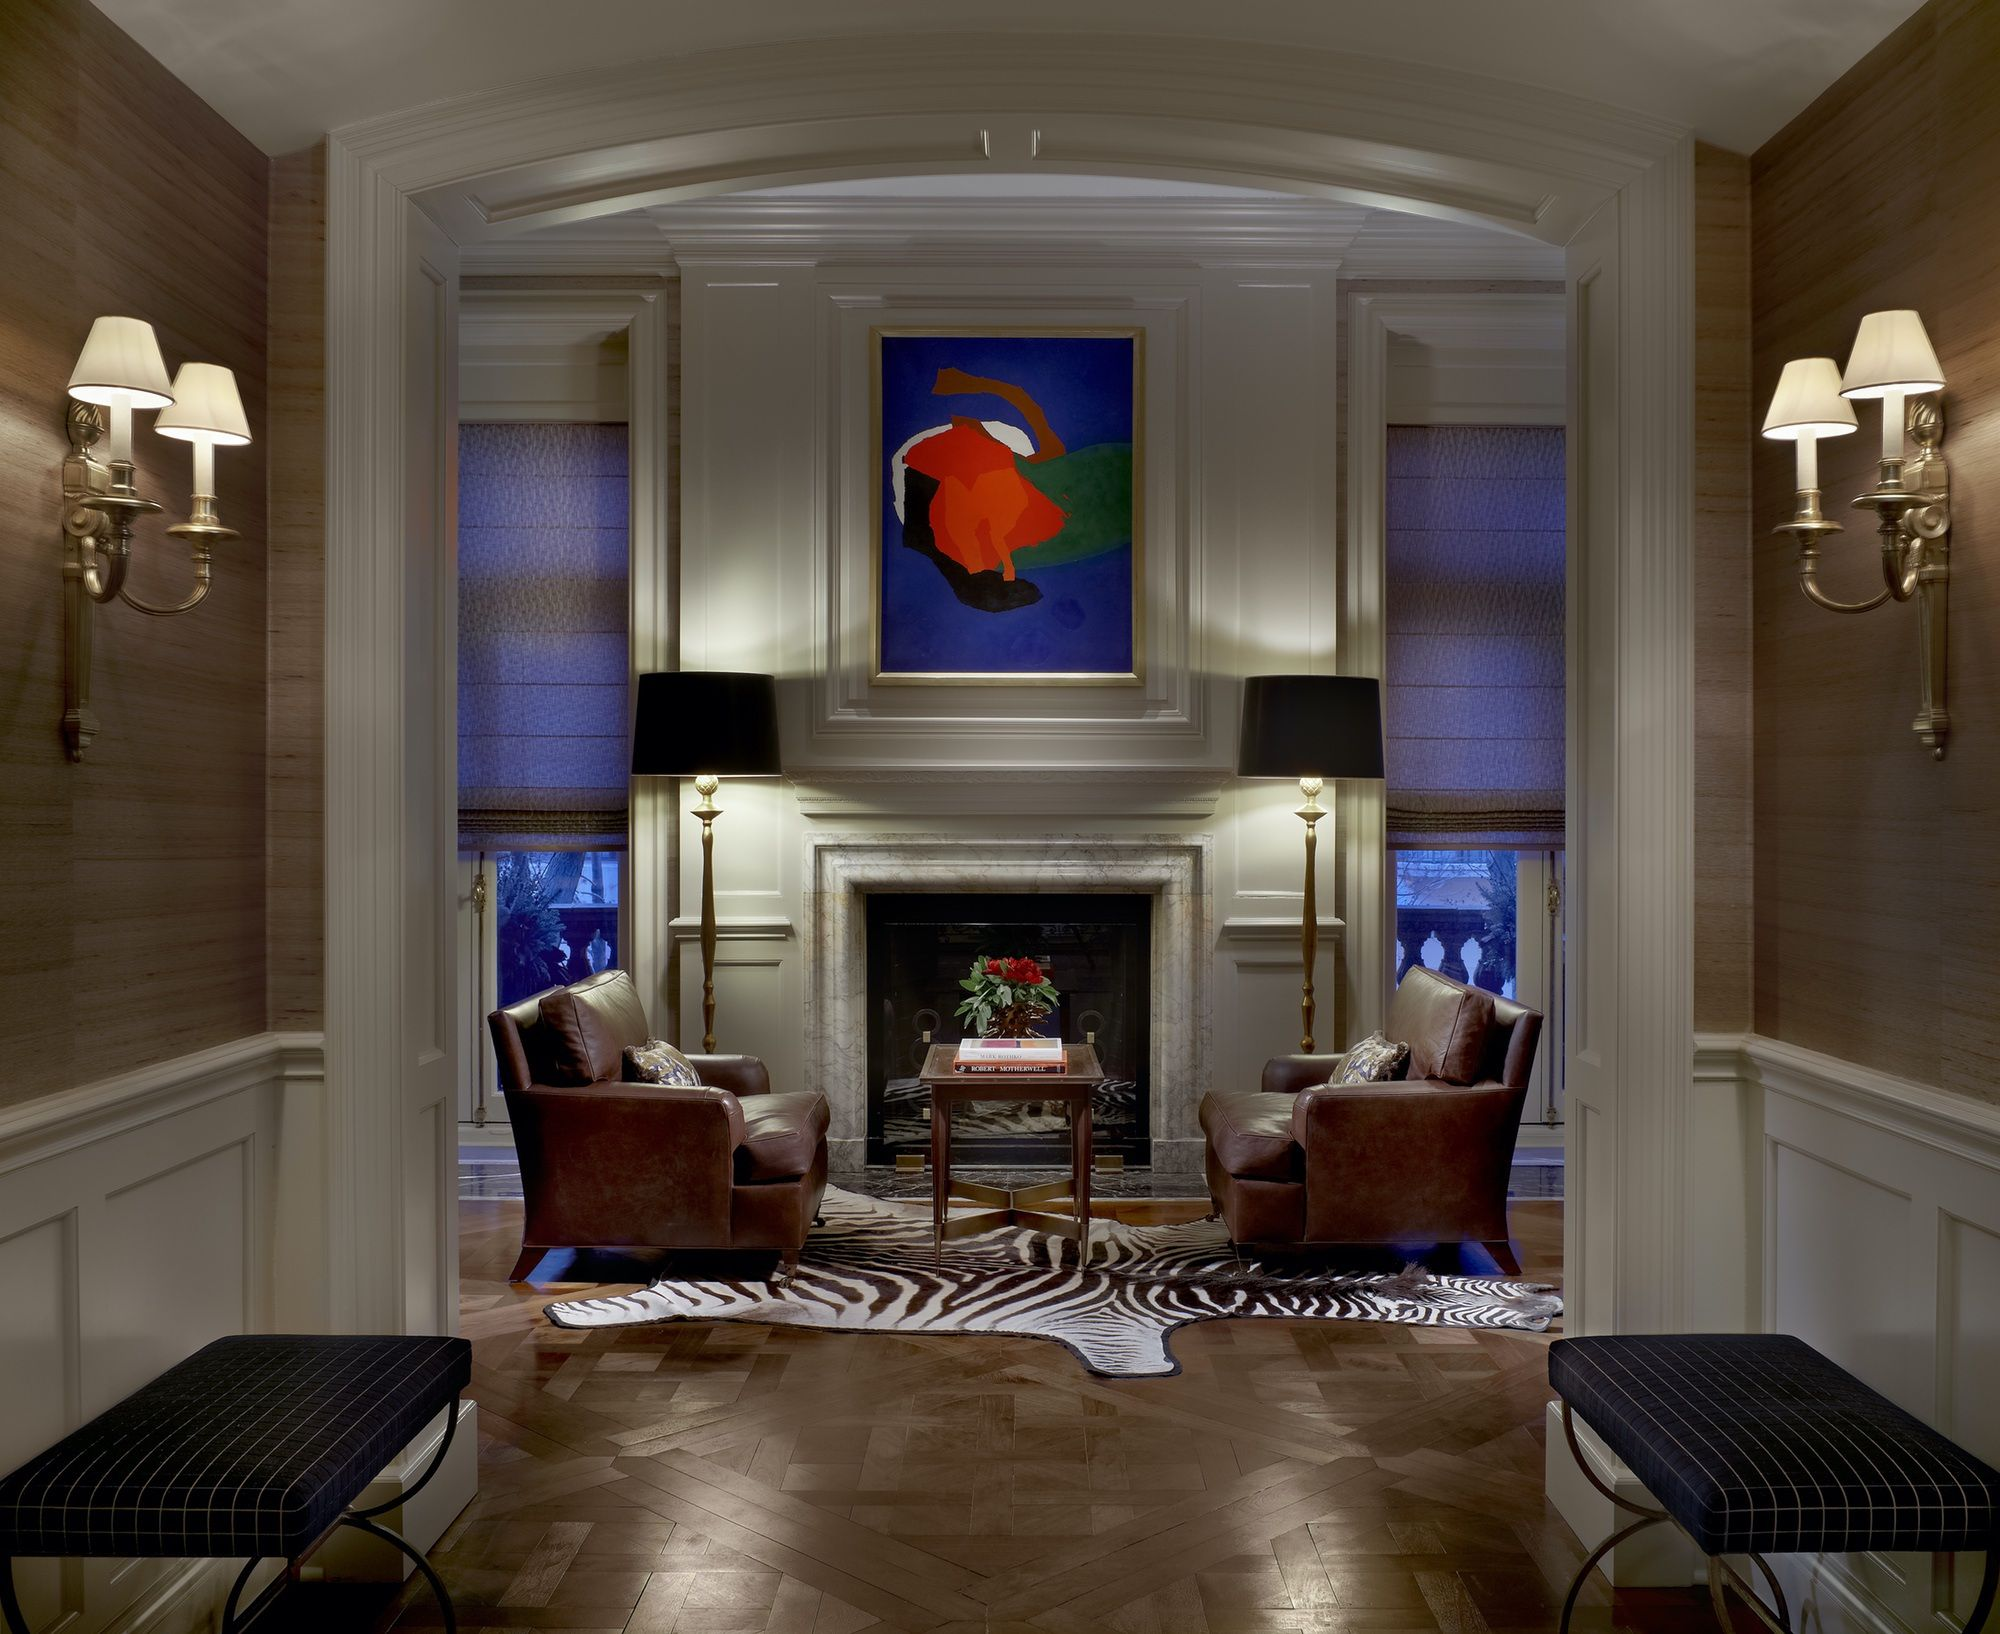 A star painting becomes part of a grand entrance thanks to the astute use of handsome yet neutral furnishings. Photo: JLI Astor Street Residence